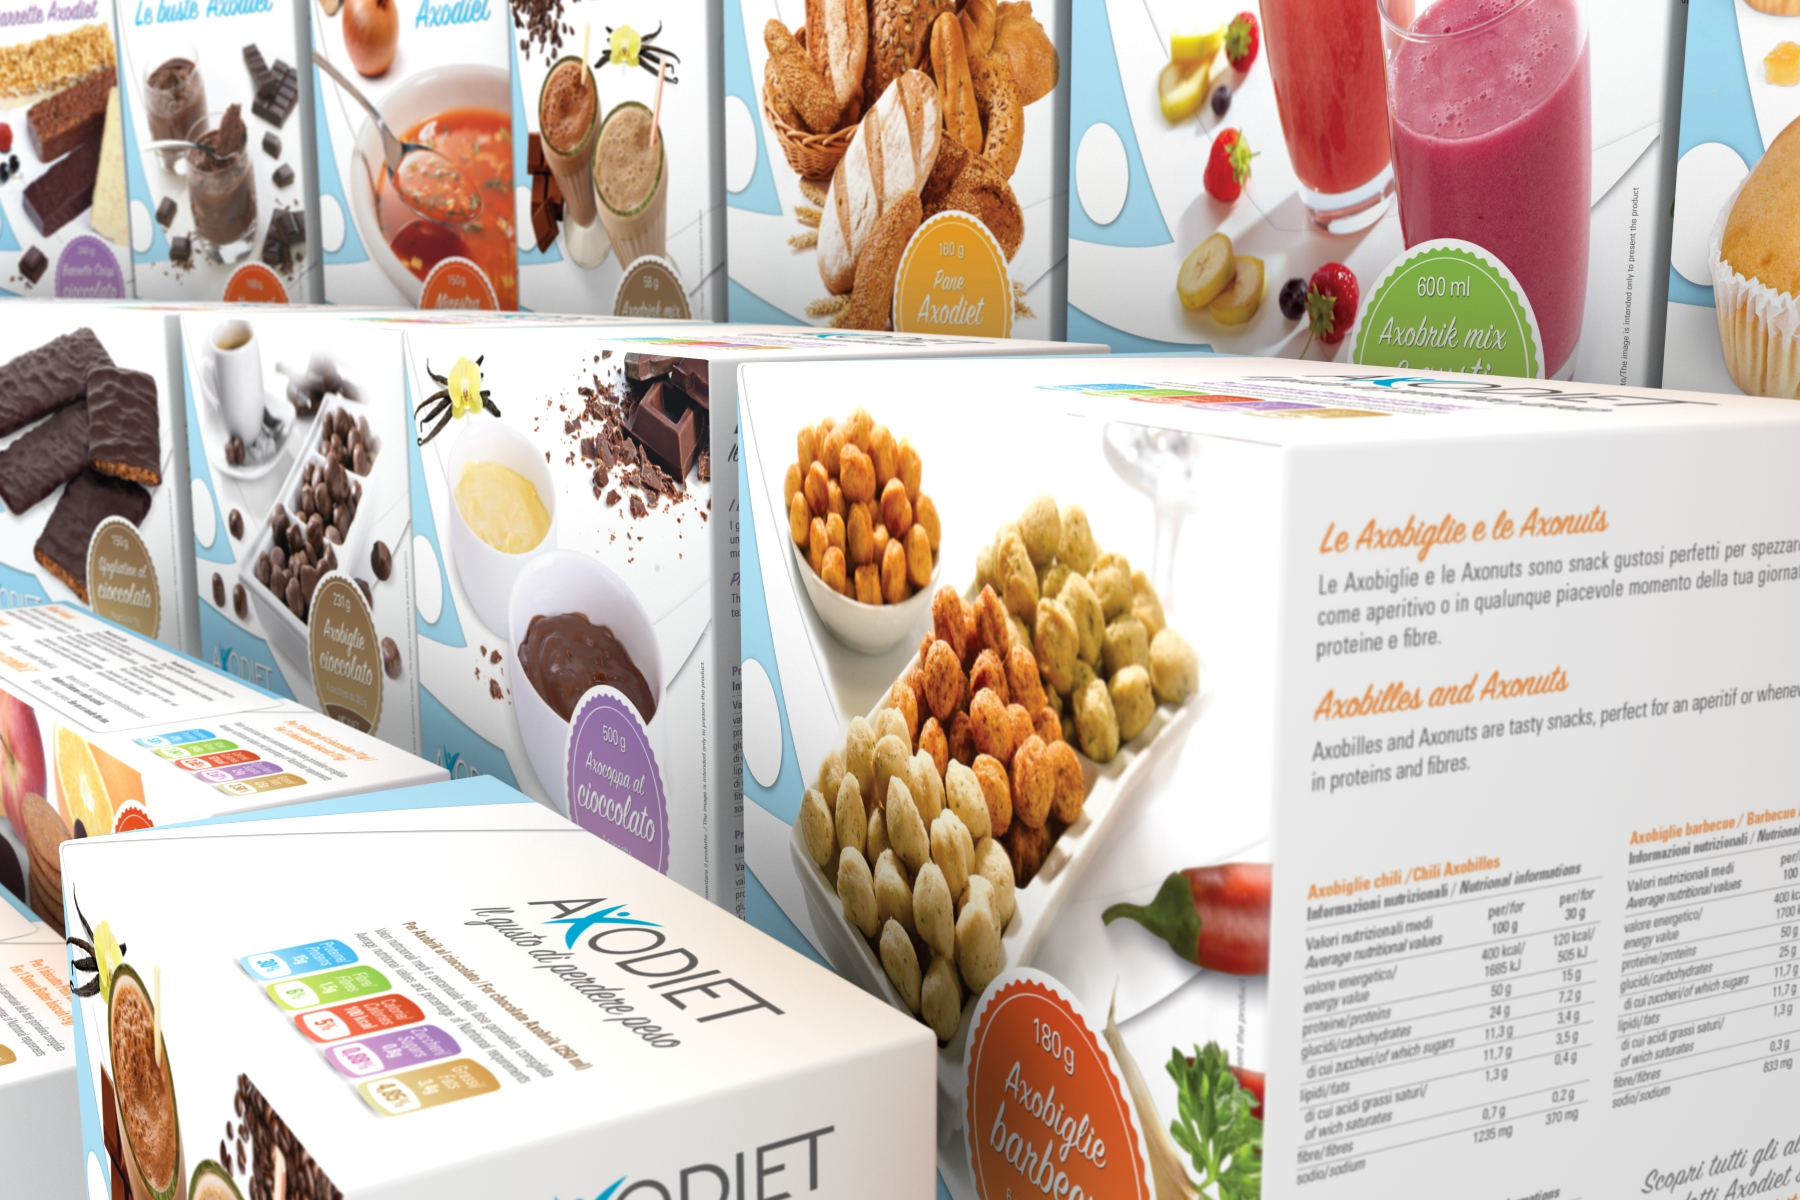 Packaging Axodiet